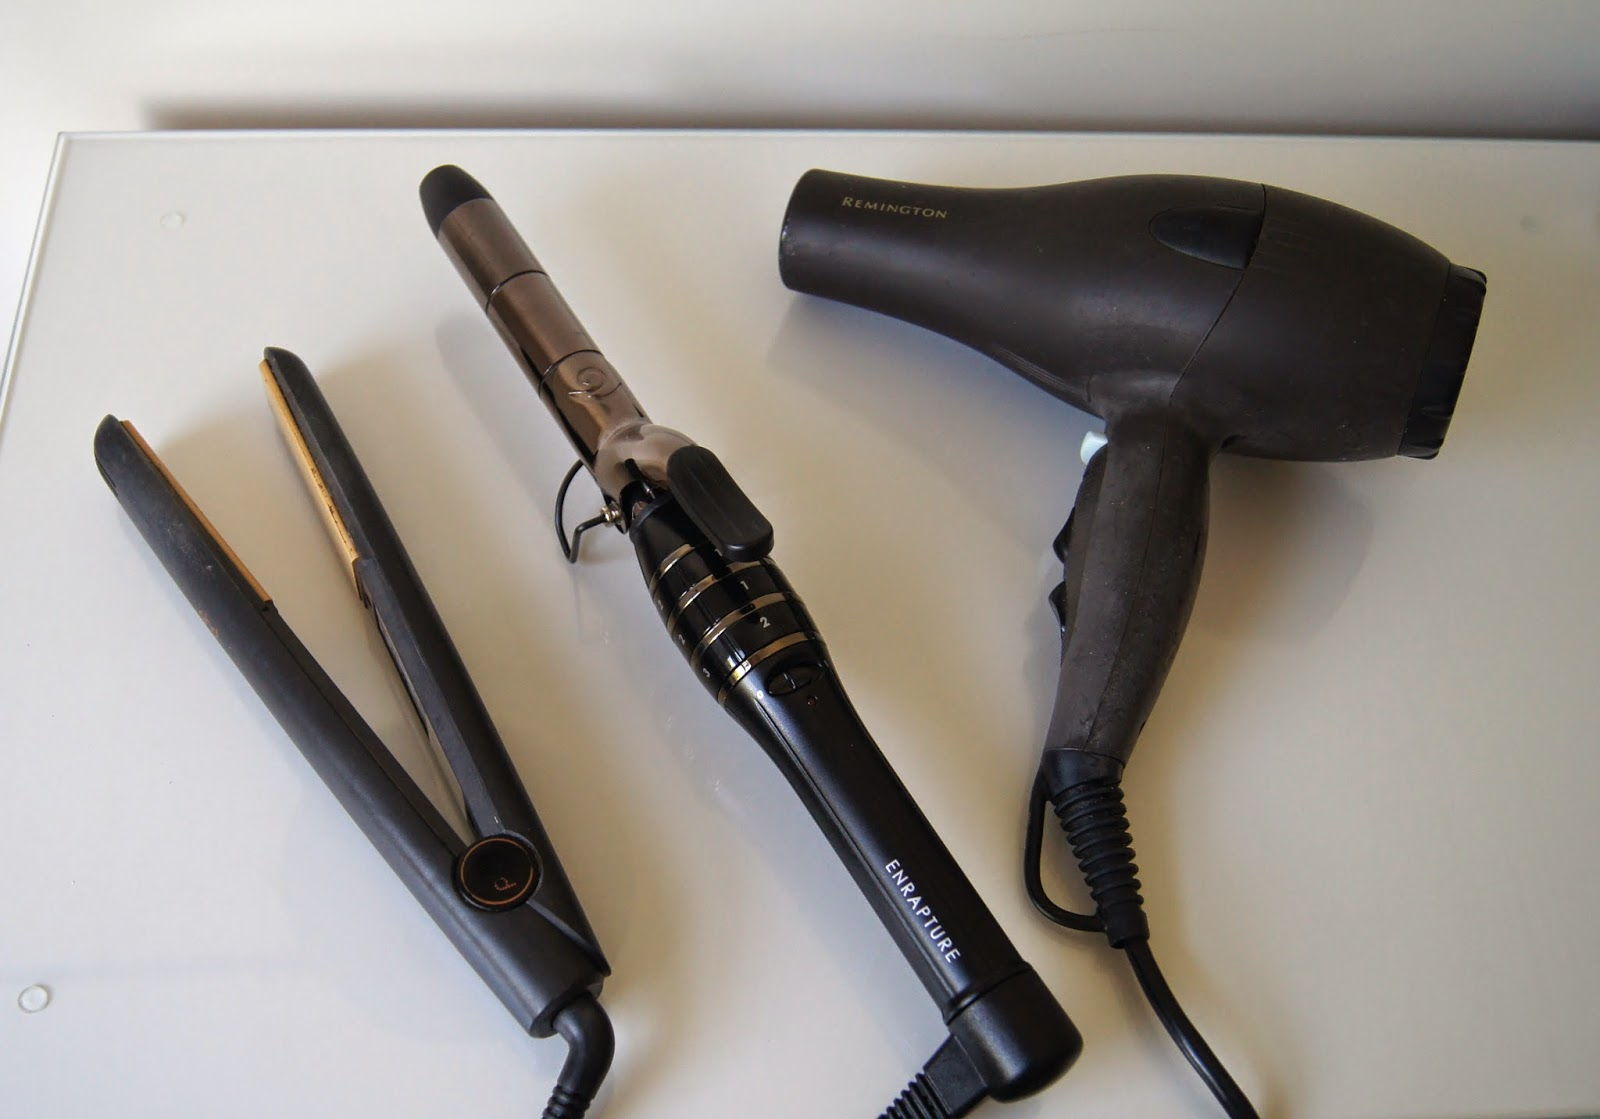 ghd hair straighteners enrapture totem styler hair curling wand and remington hairdryer reviews